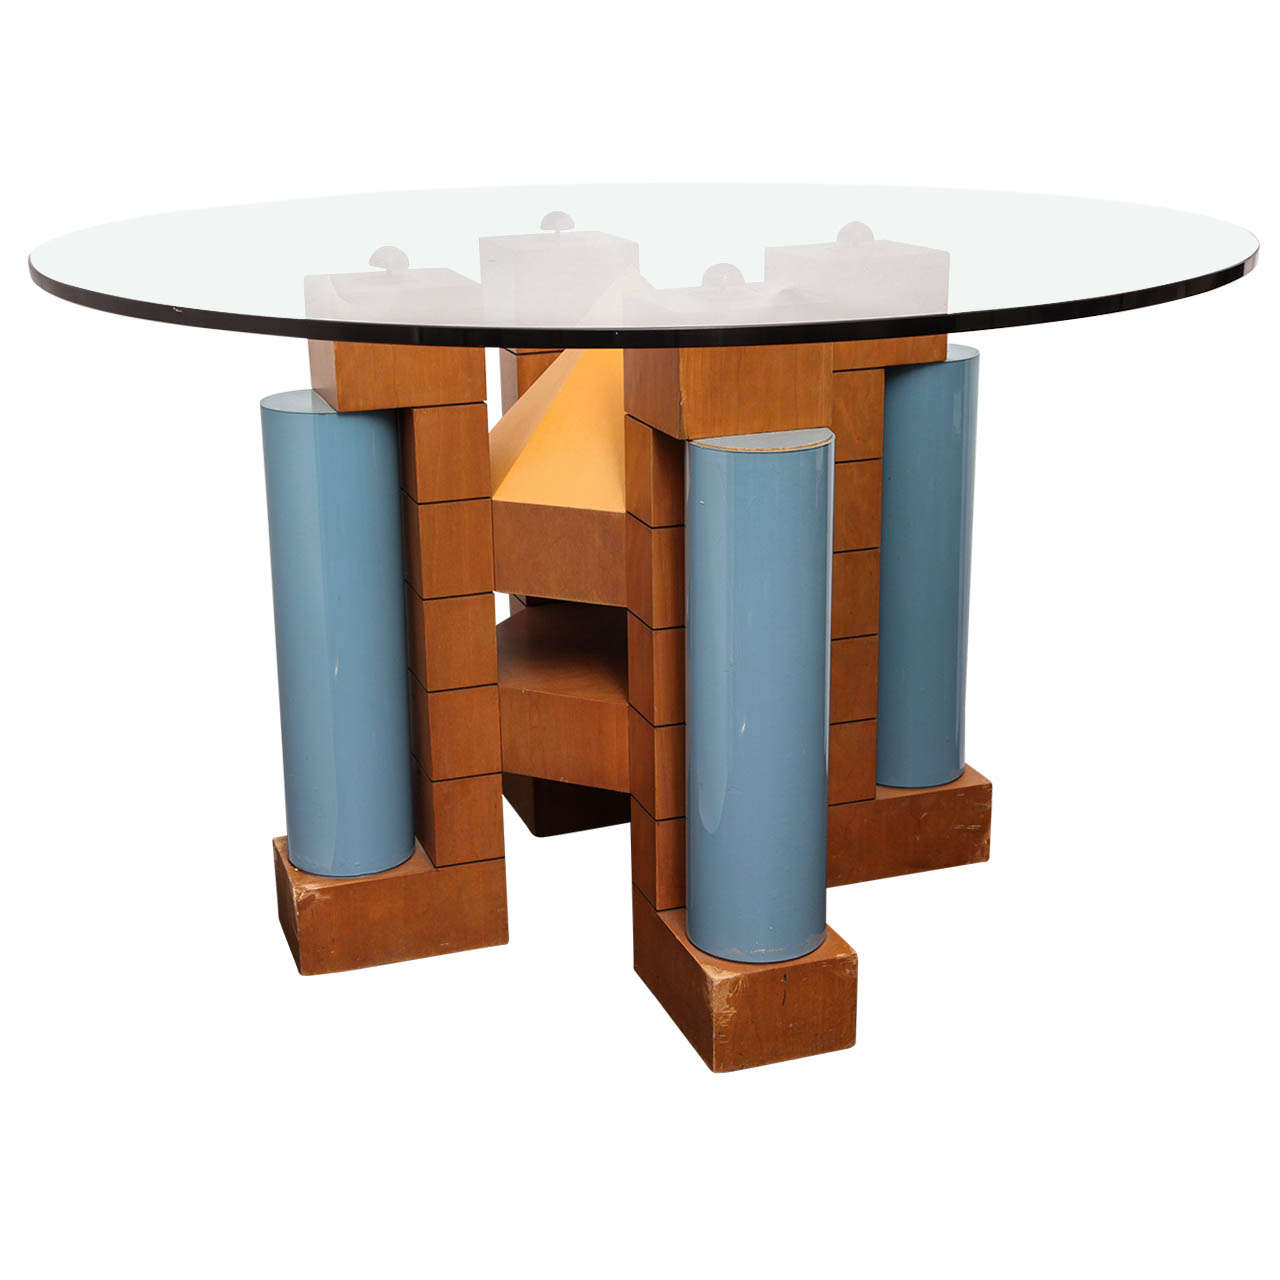 A 1980's Post Modern Dining Table by Michael Graves 1